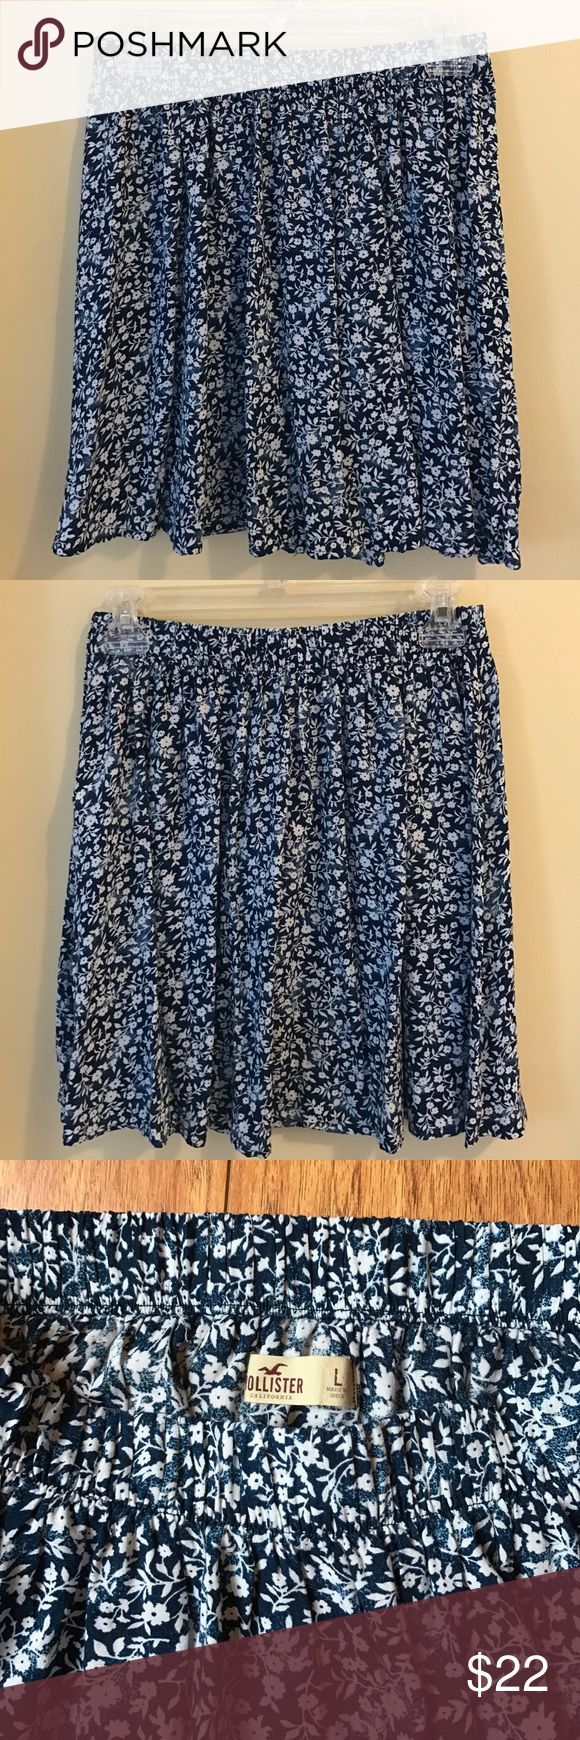 """Hollister Skirt NWOT Very cute Hollister swingy skirt! Gathered at elasticized waist. Navy with white flowers. 17"""" inches long. Never worn. Hollister Skirts Mini"""